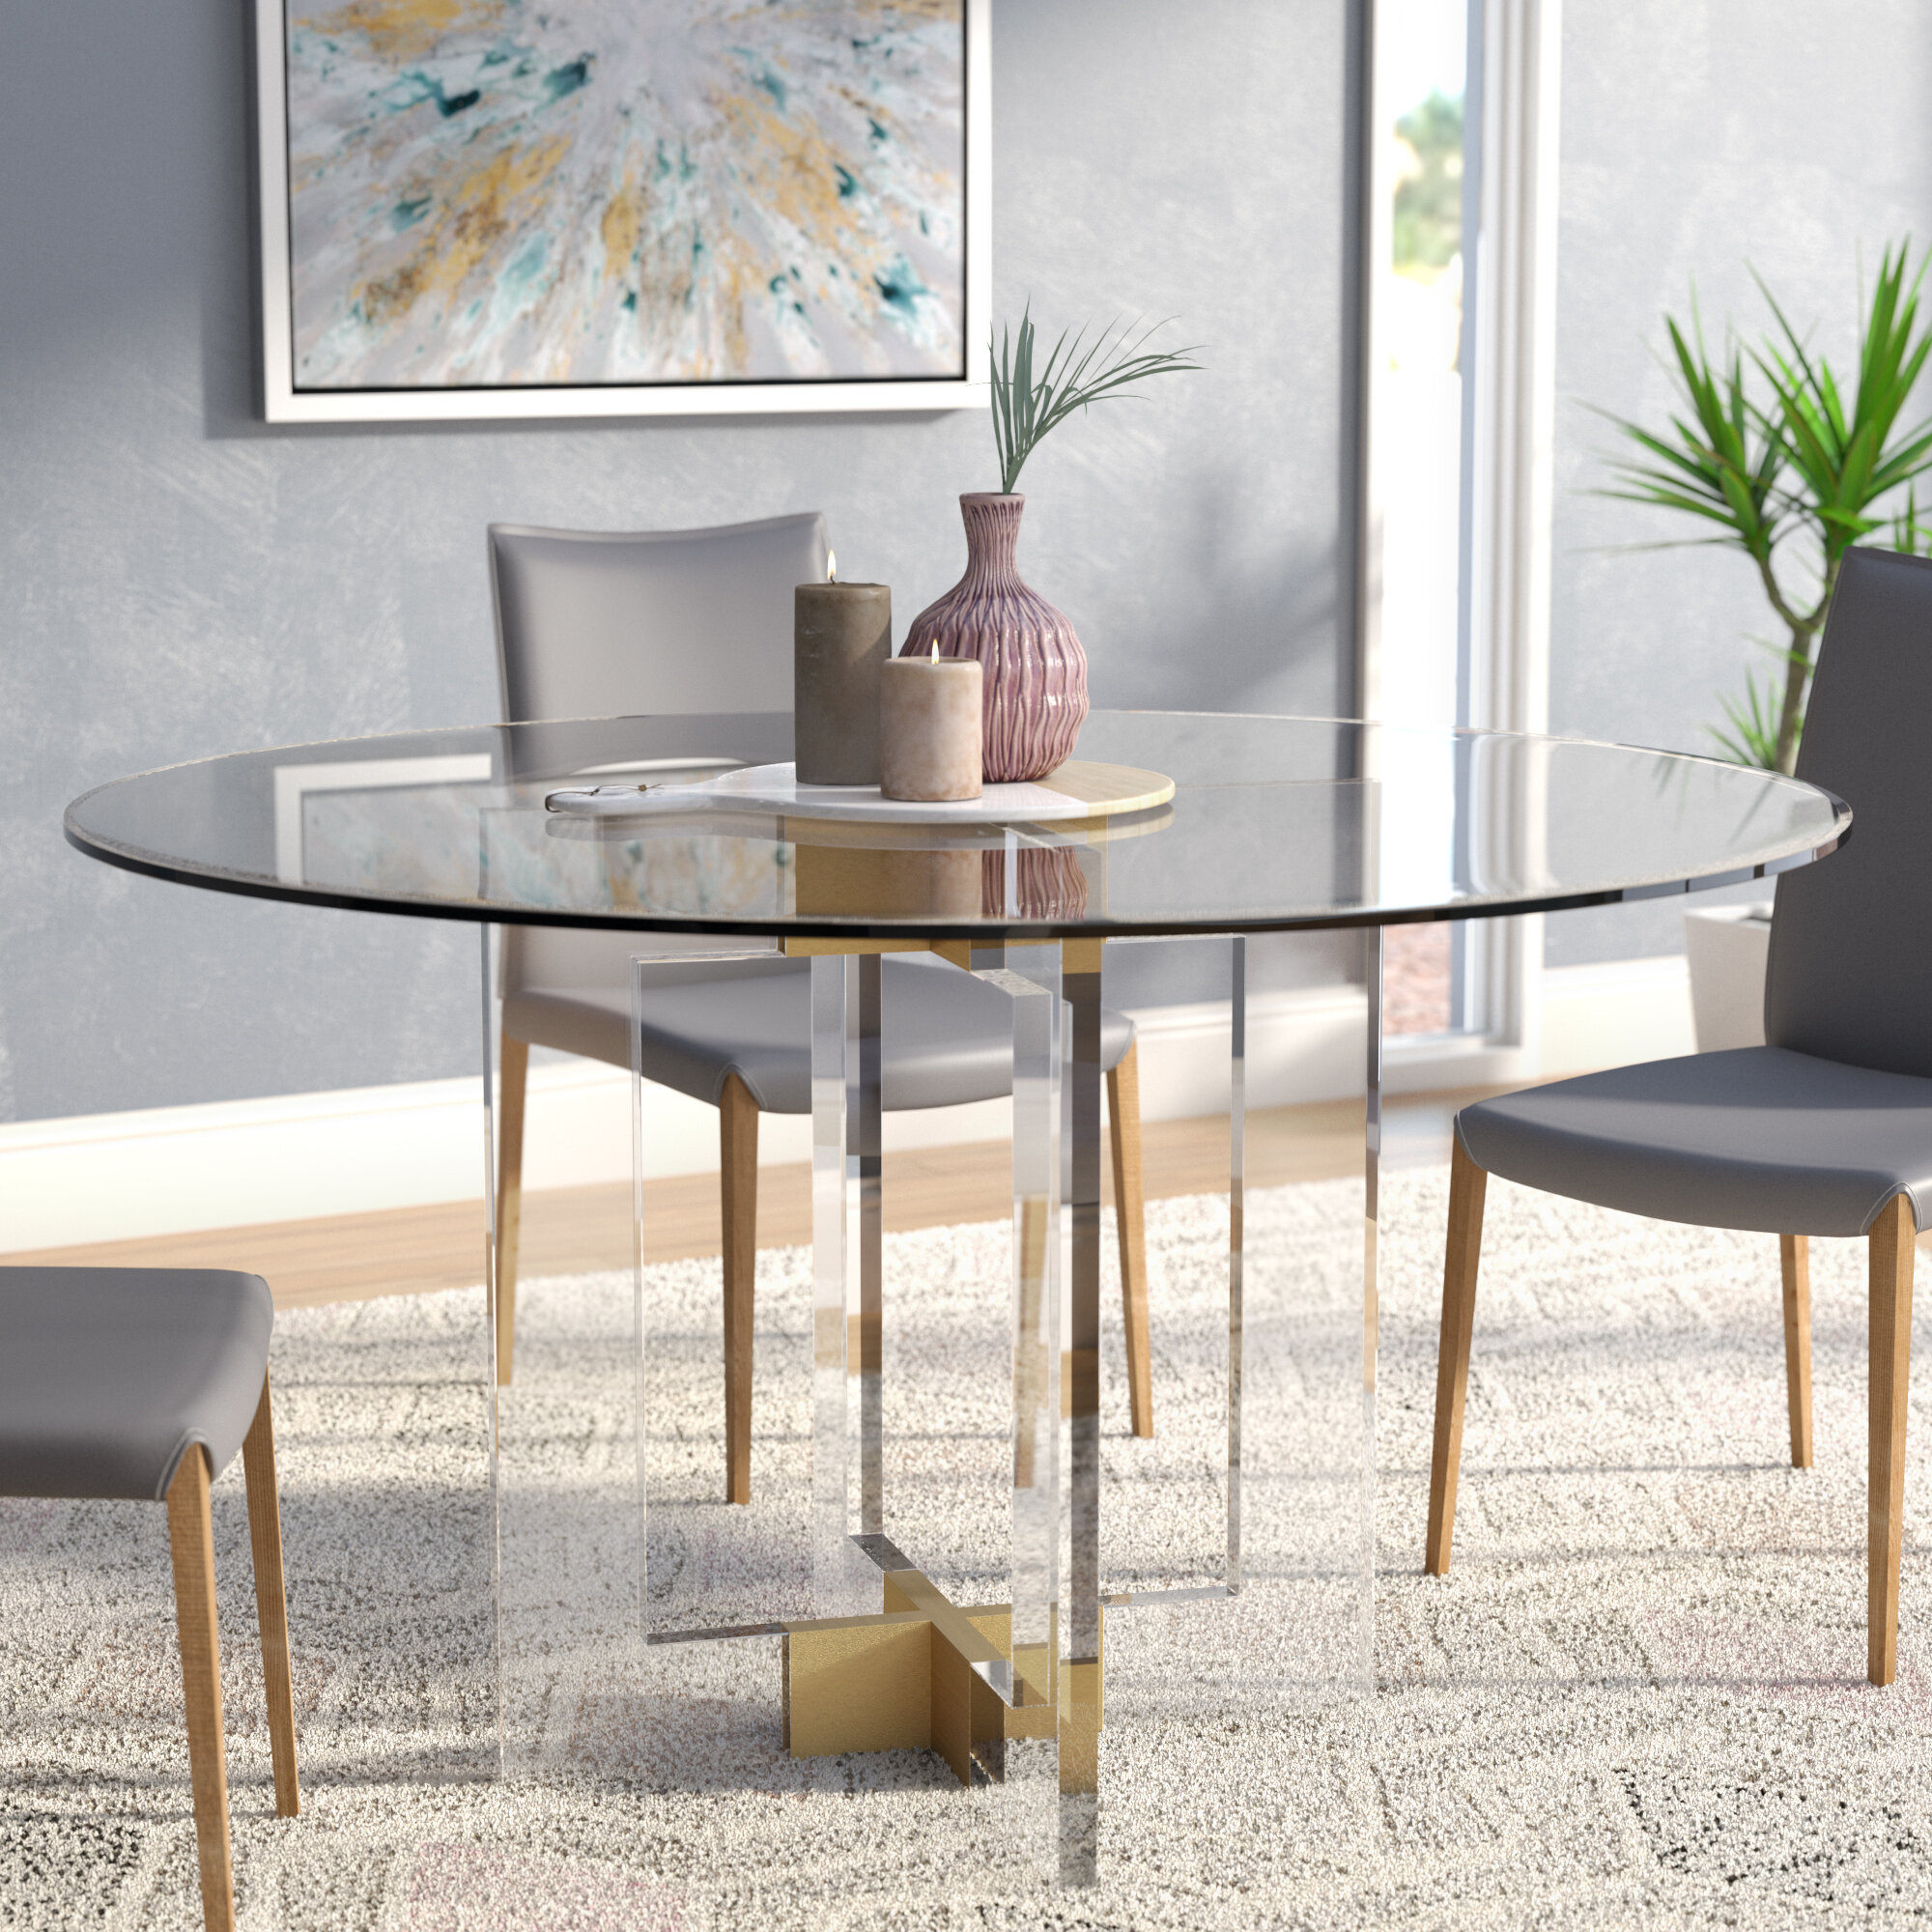 Willa Arlo Interiors Gosta Round Glass Dining Table Reviews